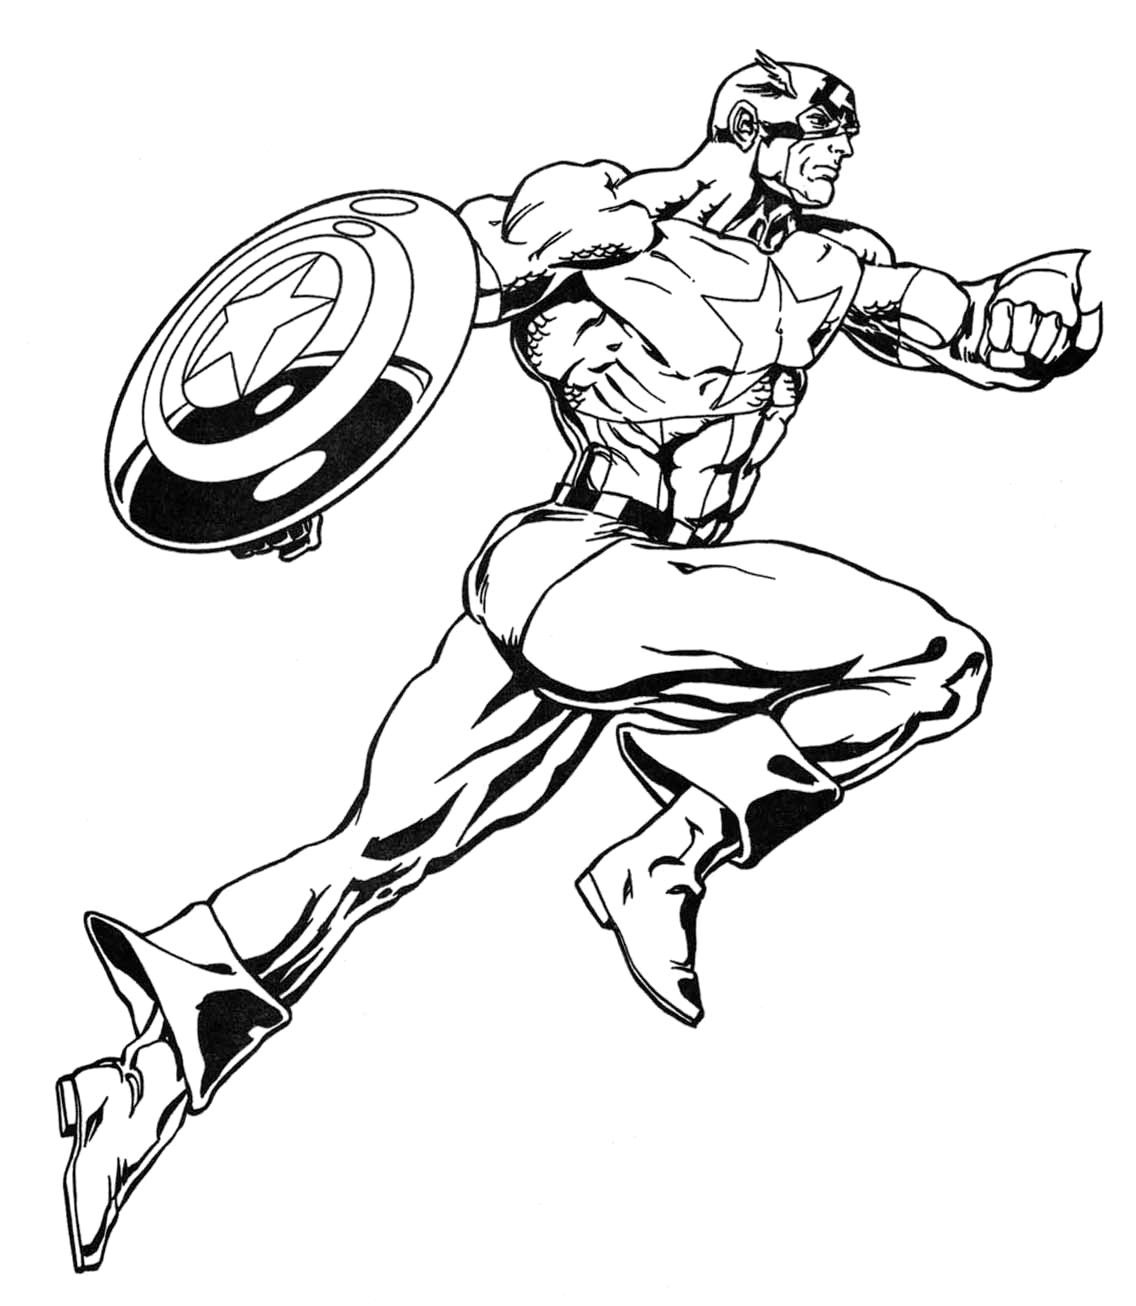 23 Superhero Coloring Pages Thevillageanthology Com In 2021 Superhero Coloring Superhero Coloring Pages Captain America Coloring Pages